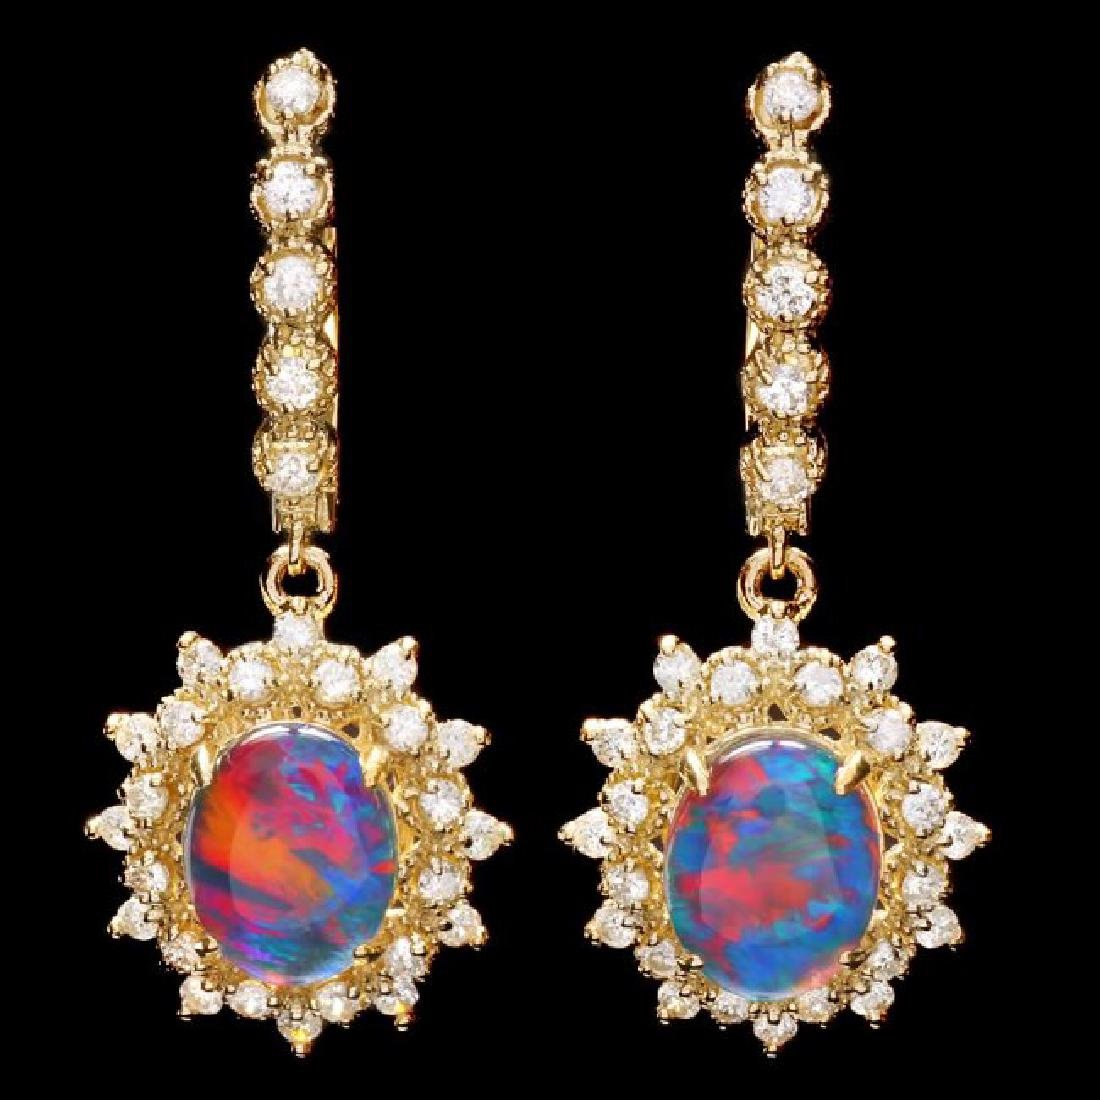 14k Gold 3.70ct Opal 1.30ct Diamond Earrings